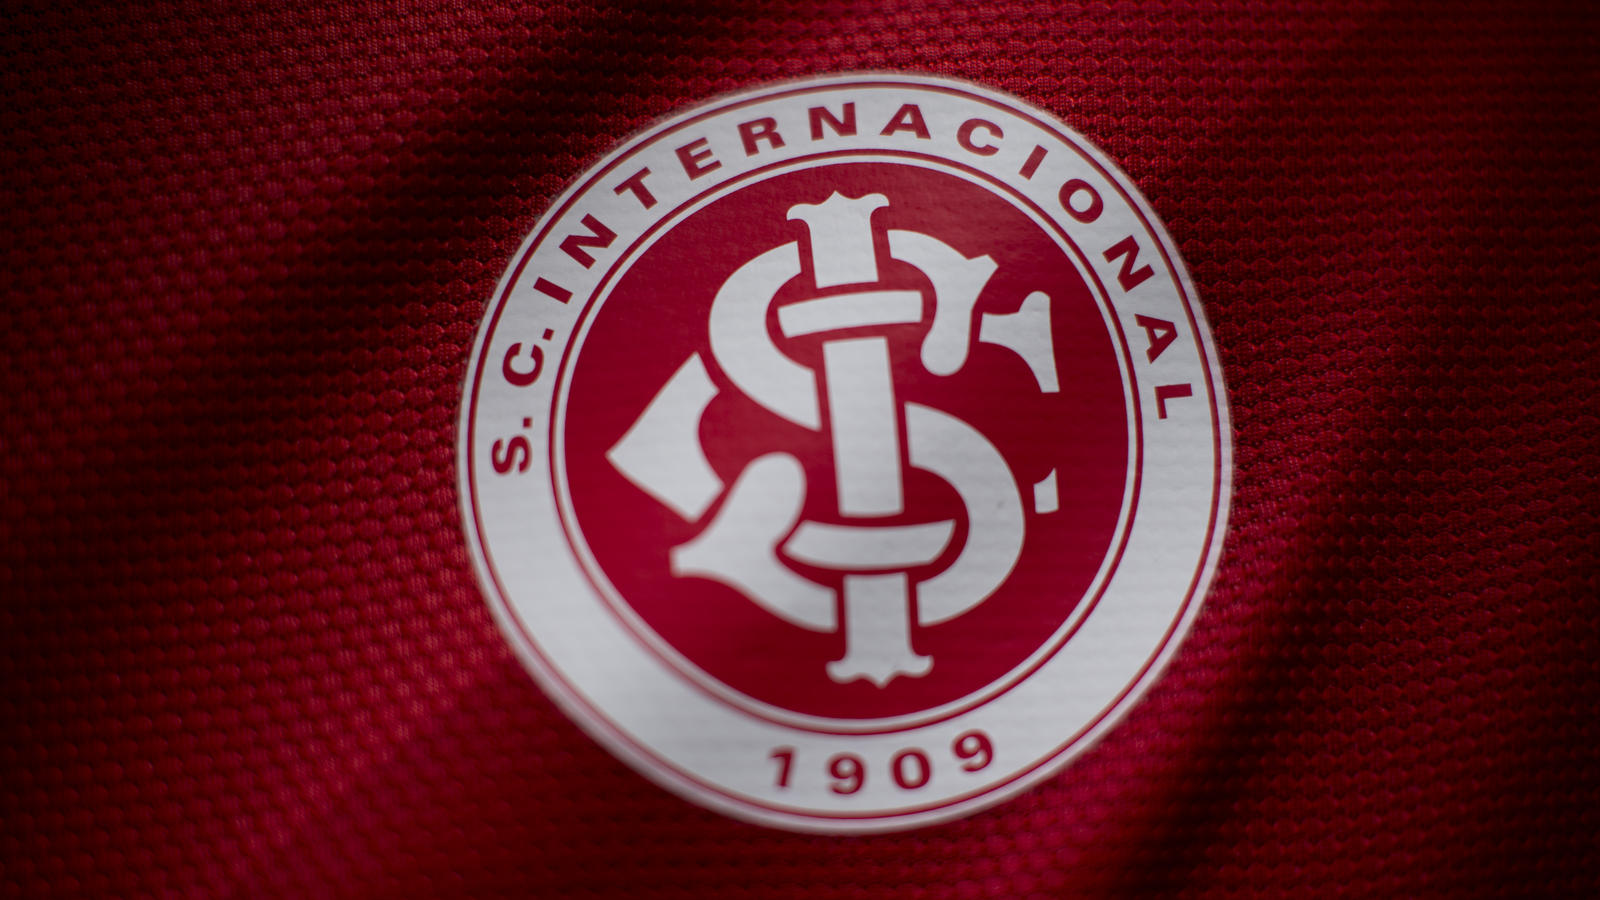 b9577776fd S.C. Internacional celebrate 104th birthday with new home kit design ...